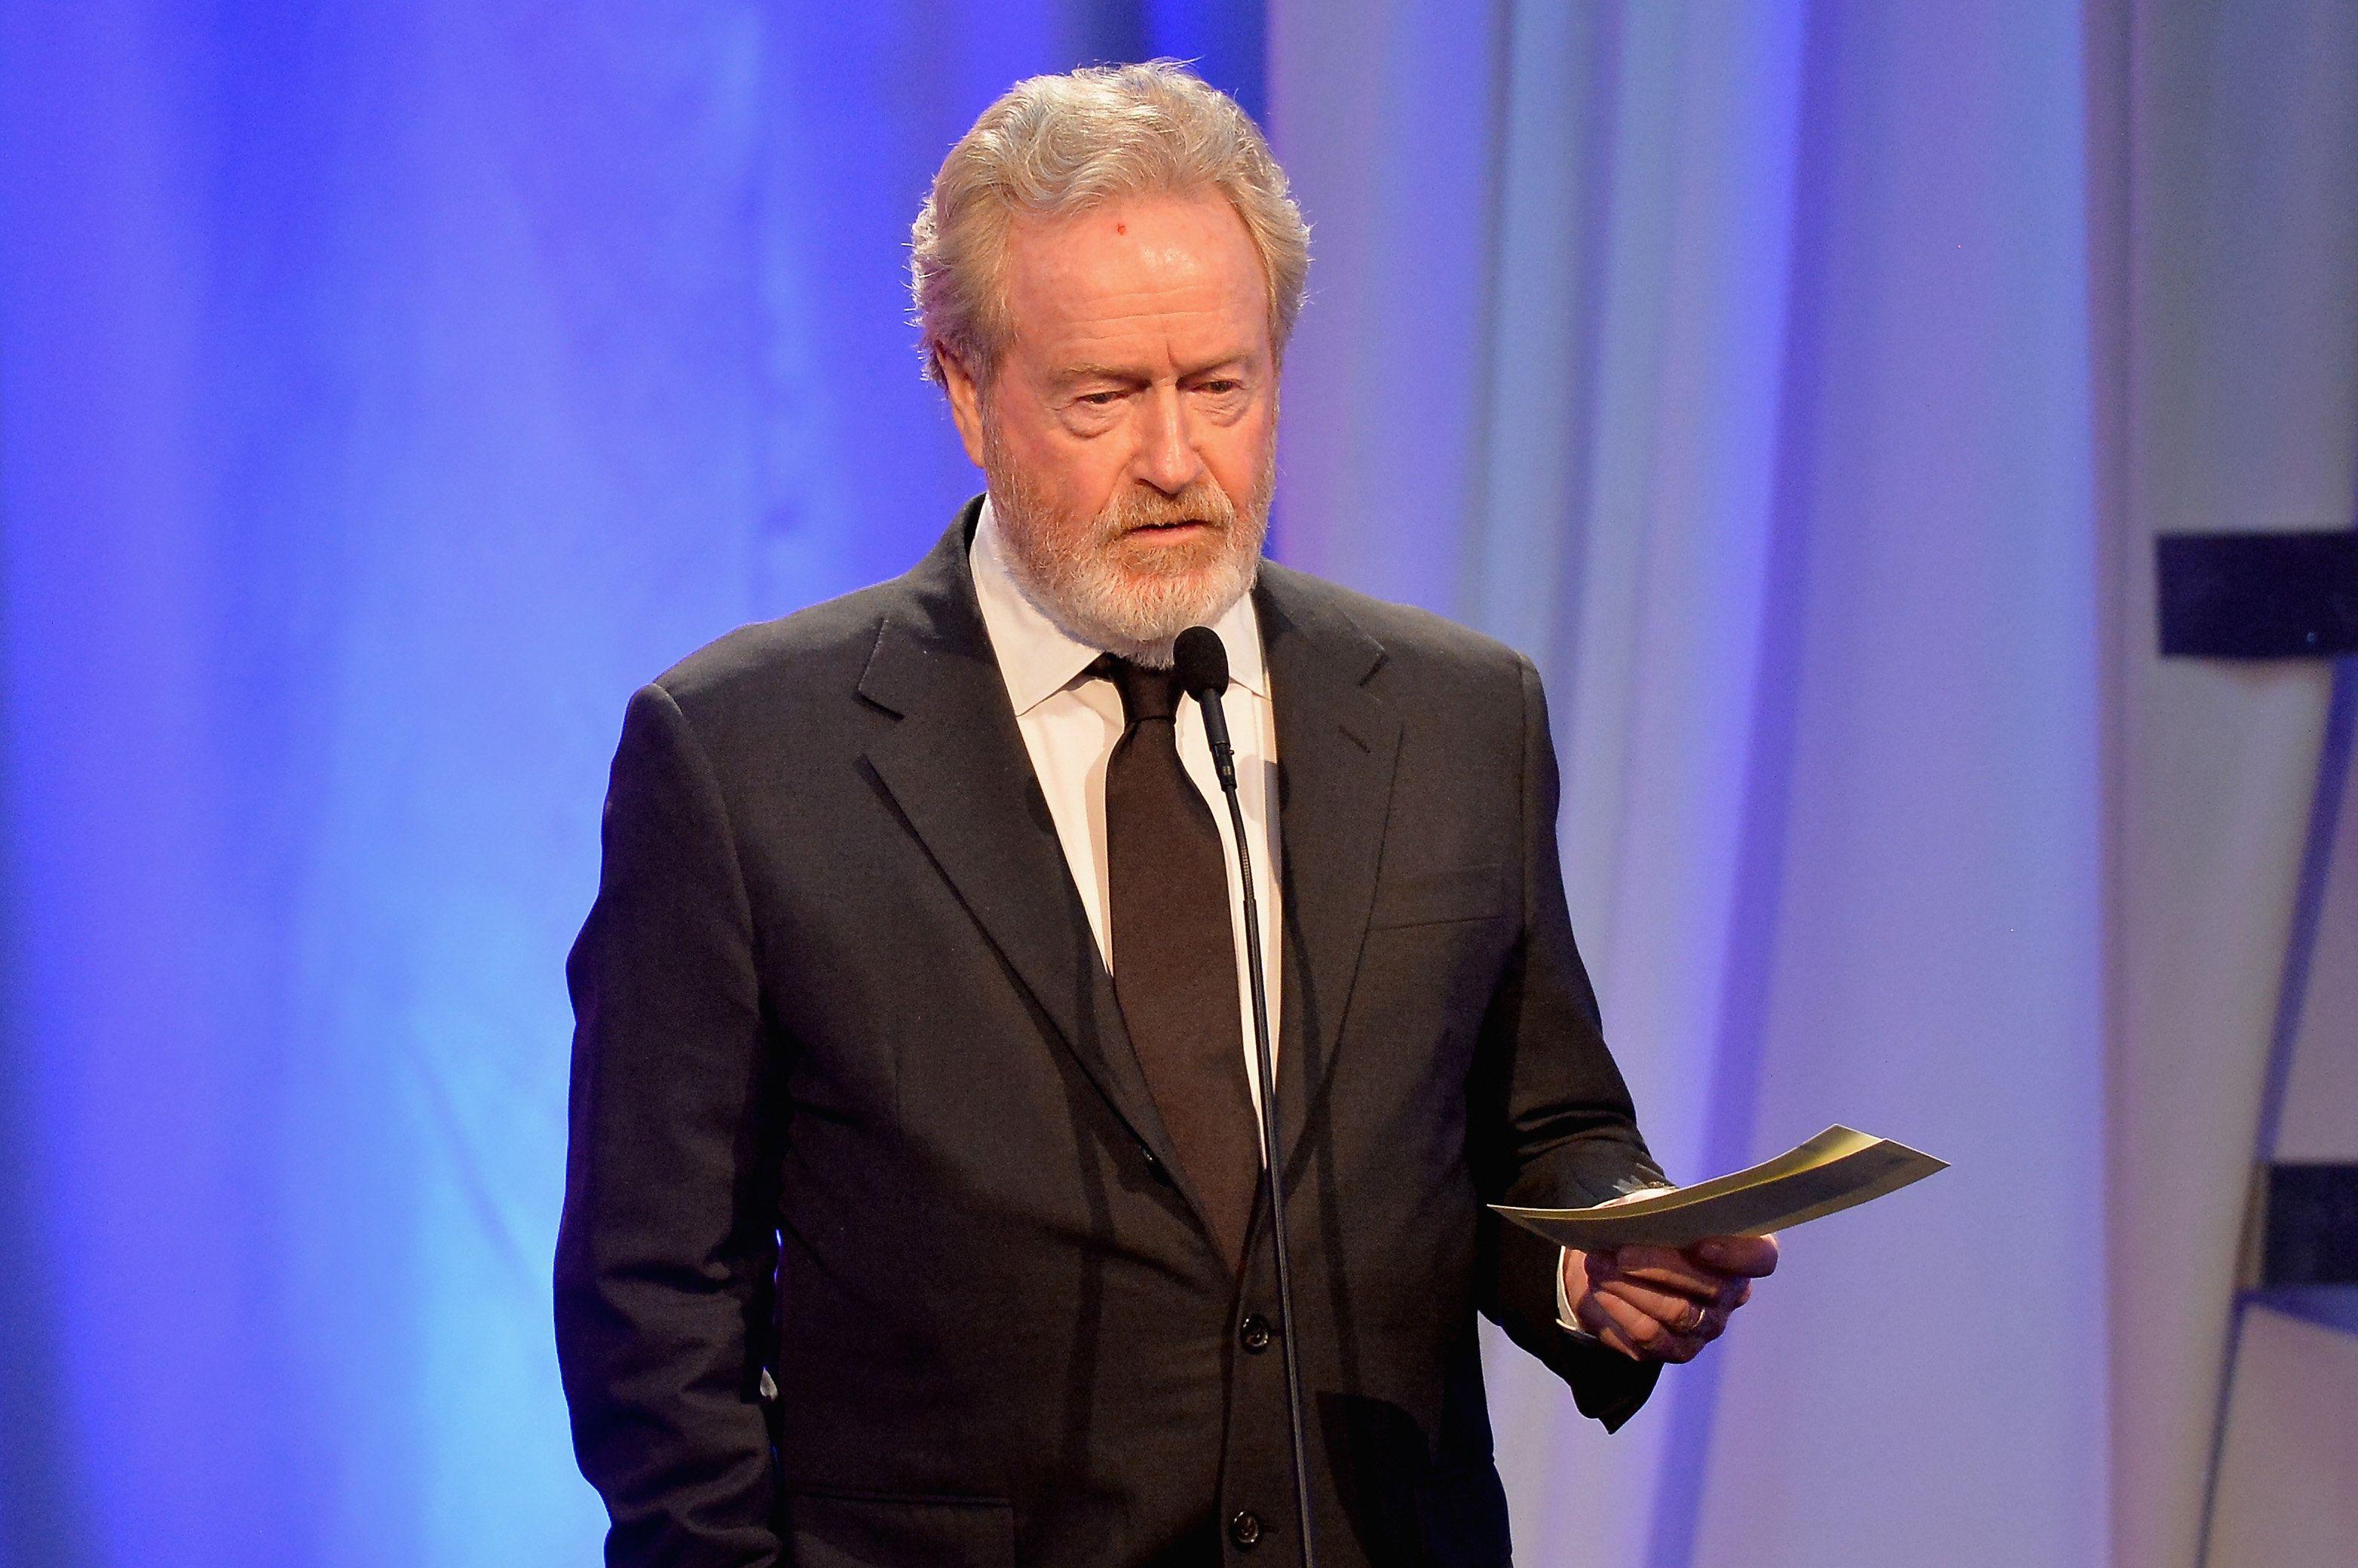 BEVERLY HILLS, CA - FEBRUARY 08:  Director Ridley Scott, winner of the Best Director award for 'The Martian,' speaks onstage at AARP's 15th Annual Movies For Grownups Awards at the Beverly Wilshire Four Seasons Hotel on February 8, 2016 in Beverly Hills, California.  (Photo by Earl Gibson III/Getty Images)